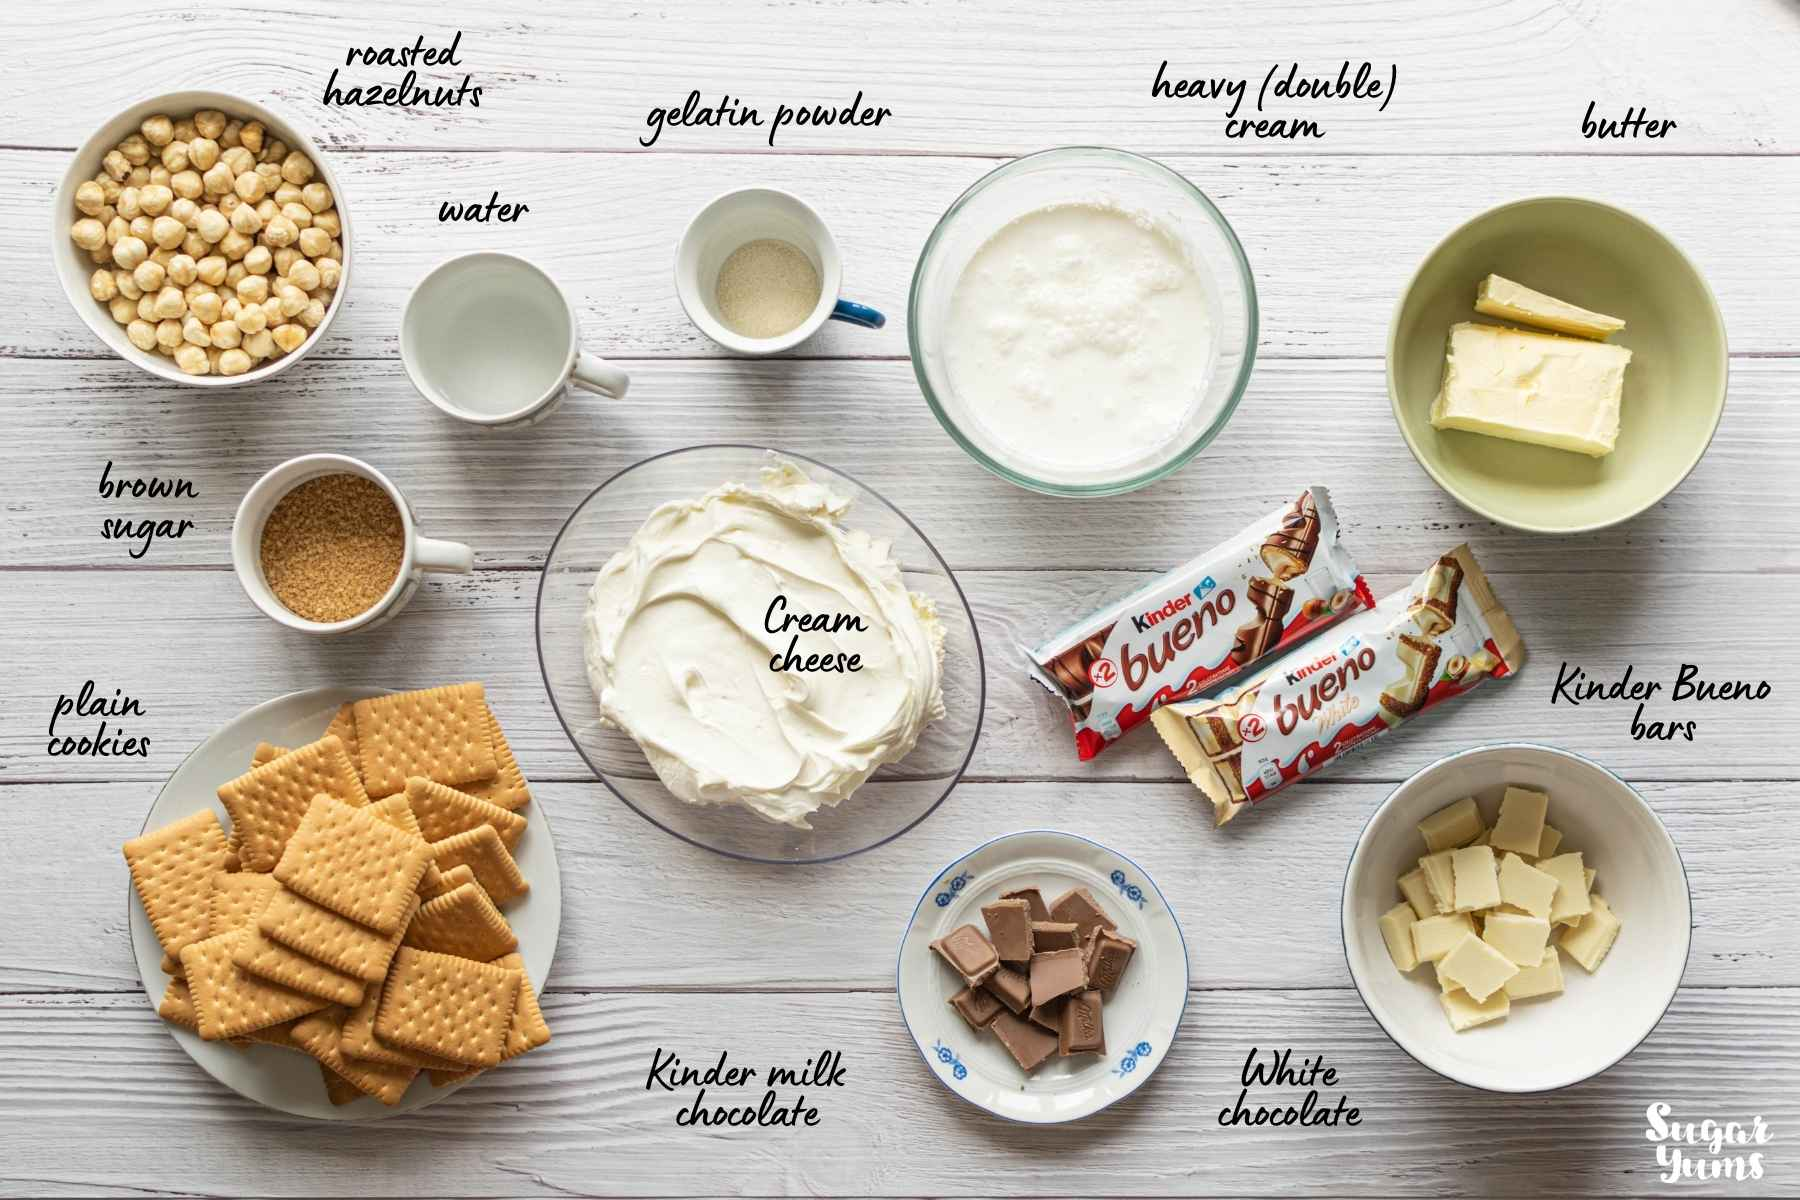 Flatlay image of ingredients needed for Kinder Bueno cheesecake